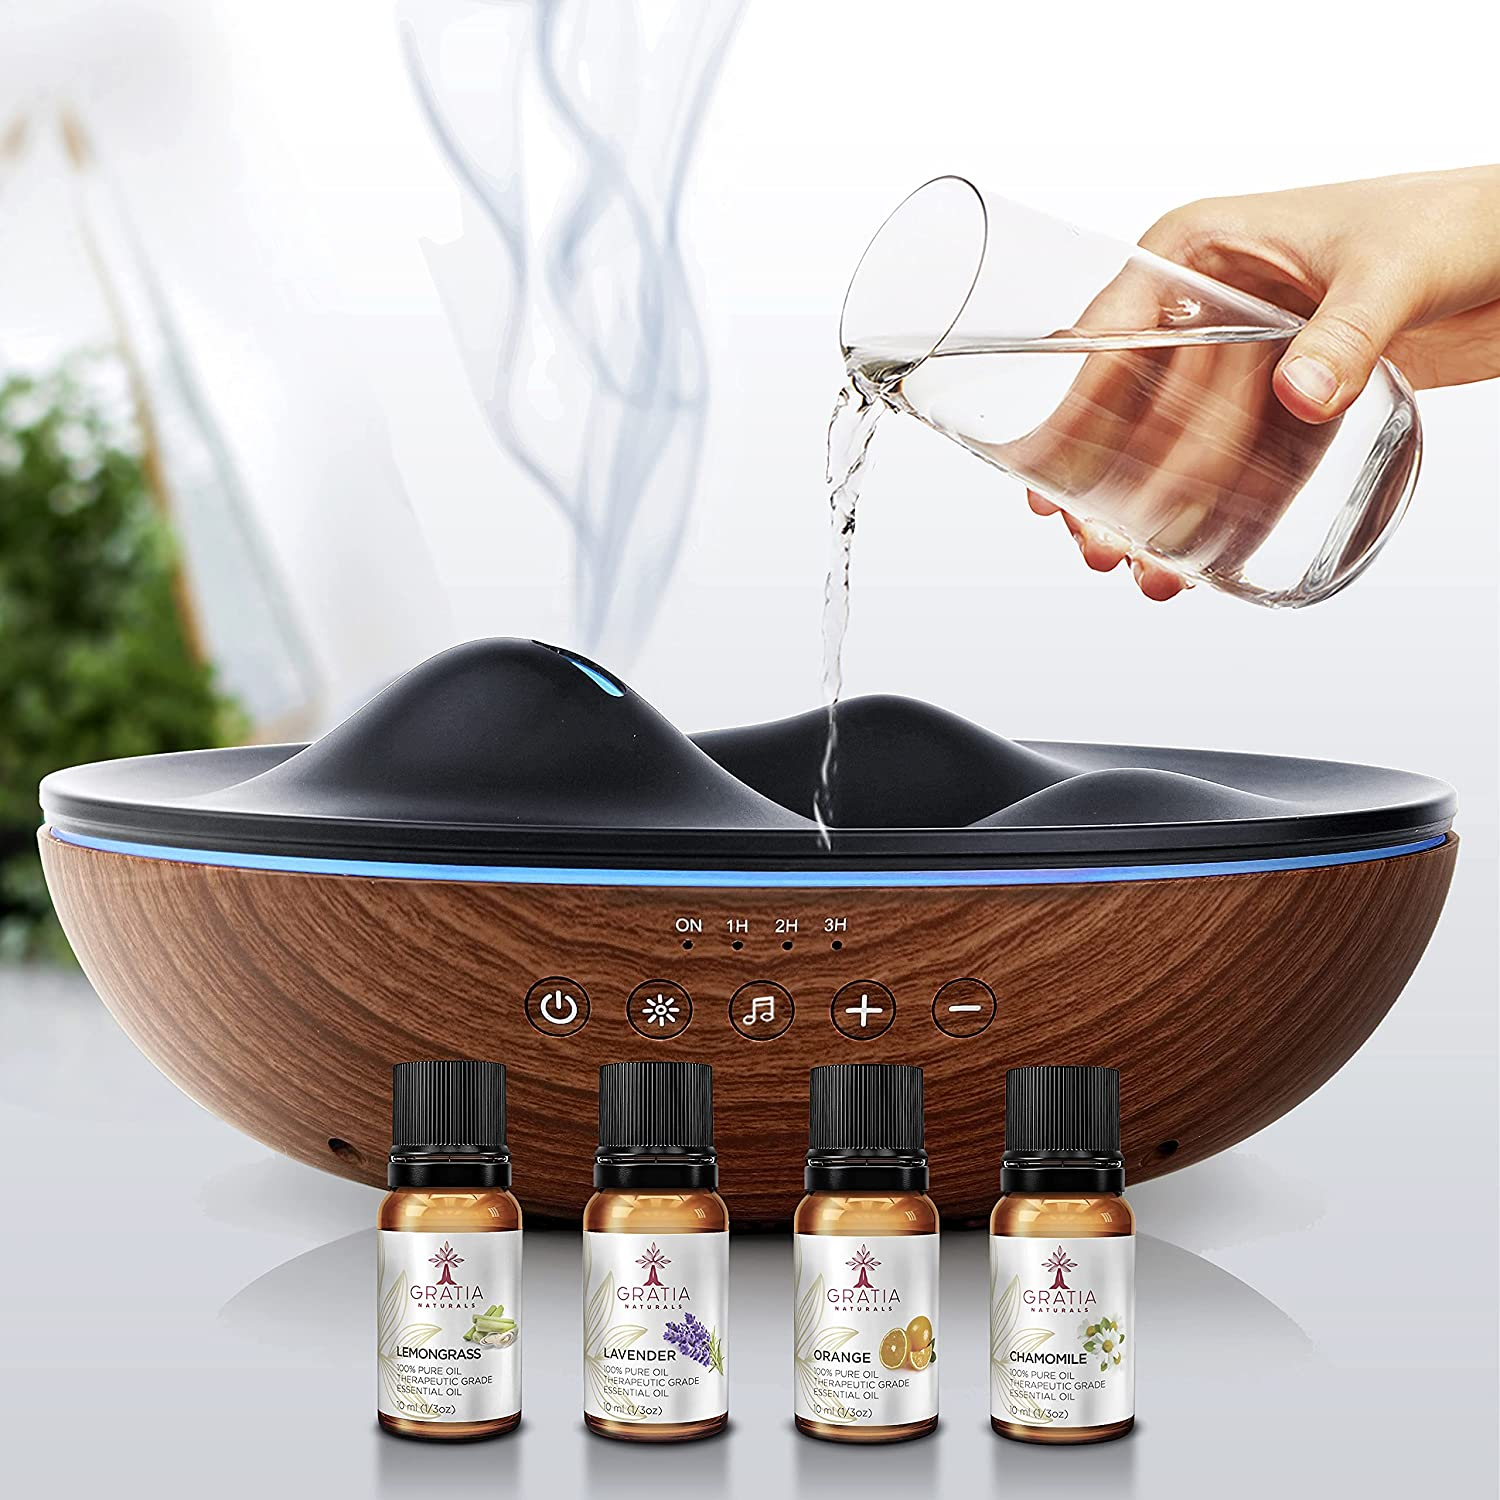 GRATIA NATURALS Aromatherapy Essential Oil Diffuser with Essential Oils Set, 6 Nature Relaxing Sounds, 7 Color Night Lights, Ultrasonic Silent Cool Mist Humidifier, Aroma Diffuser for Large Room